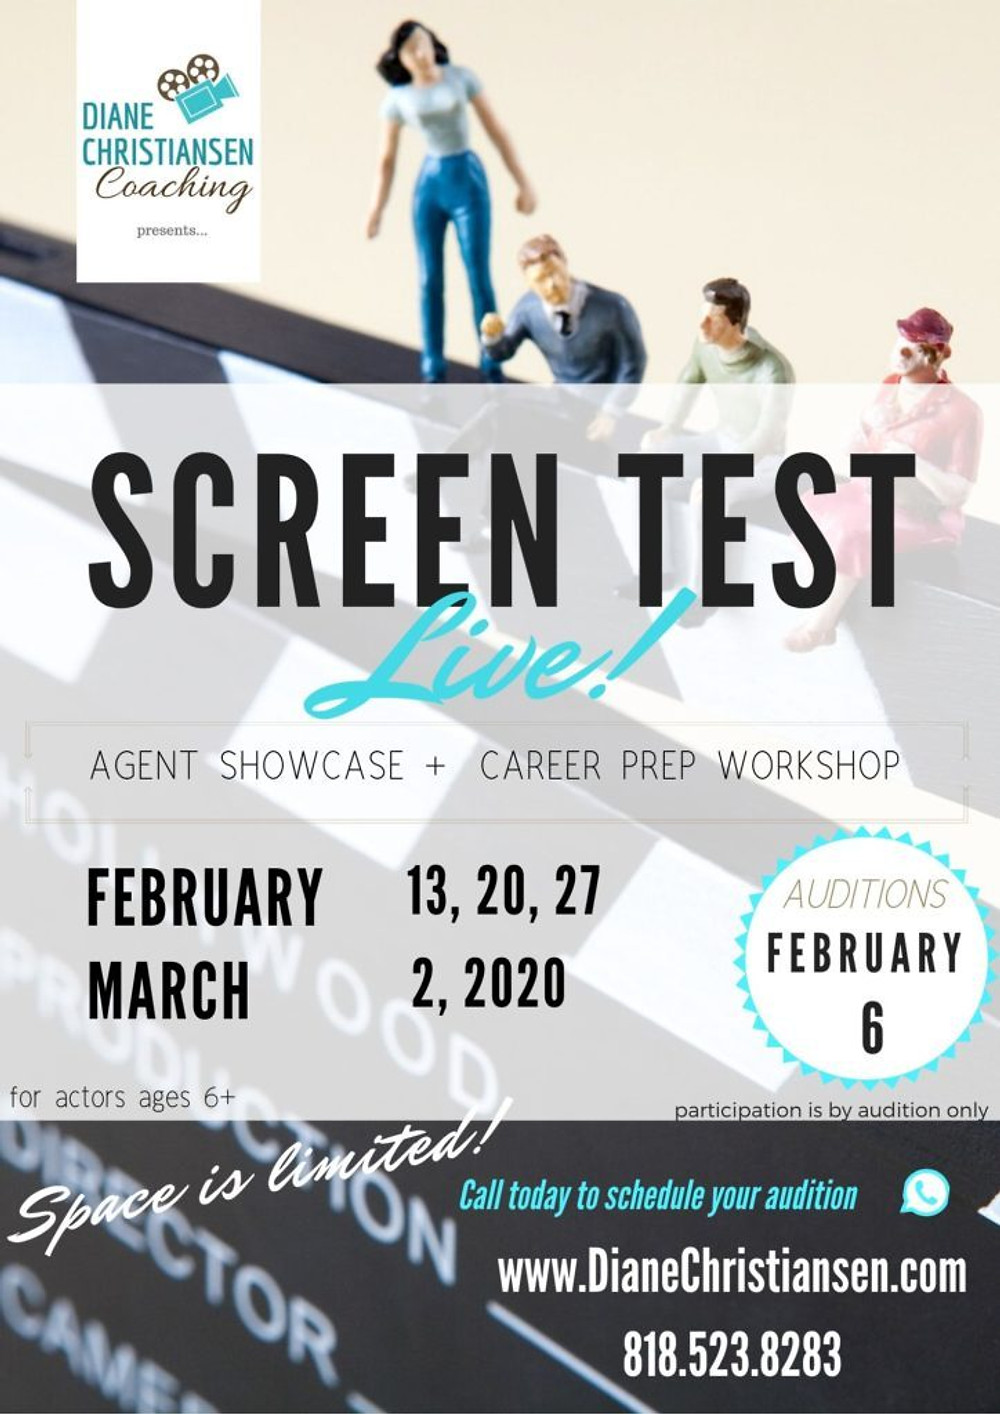 screen test live agent showcase and career prep workshop. AUDITIONS FEB. 6 - call to schedule